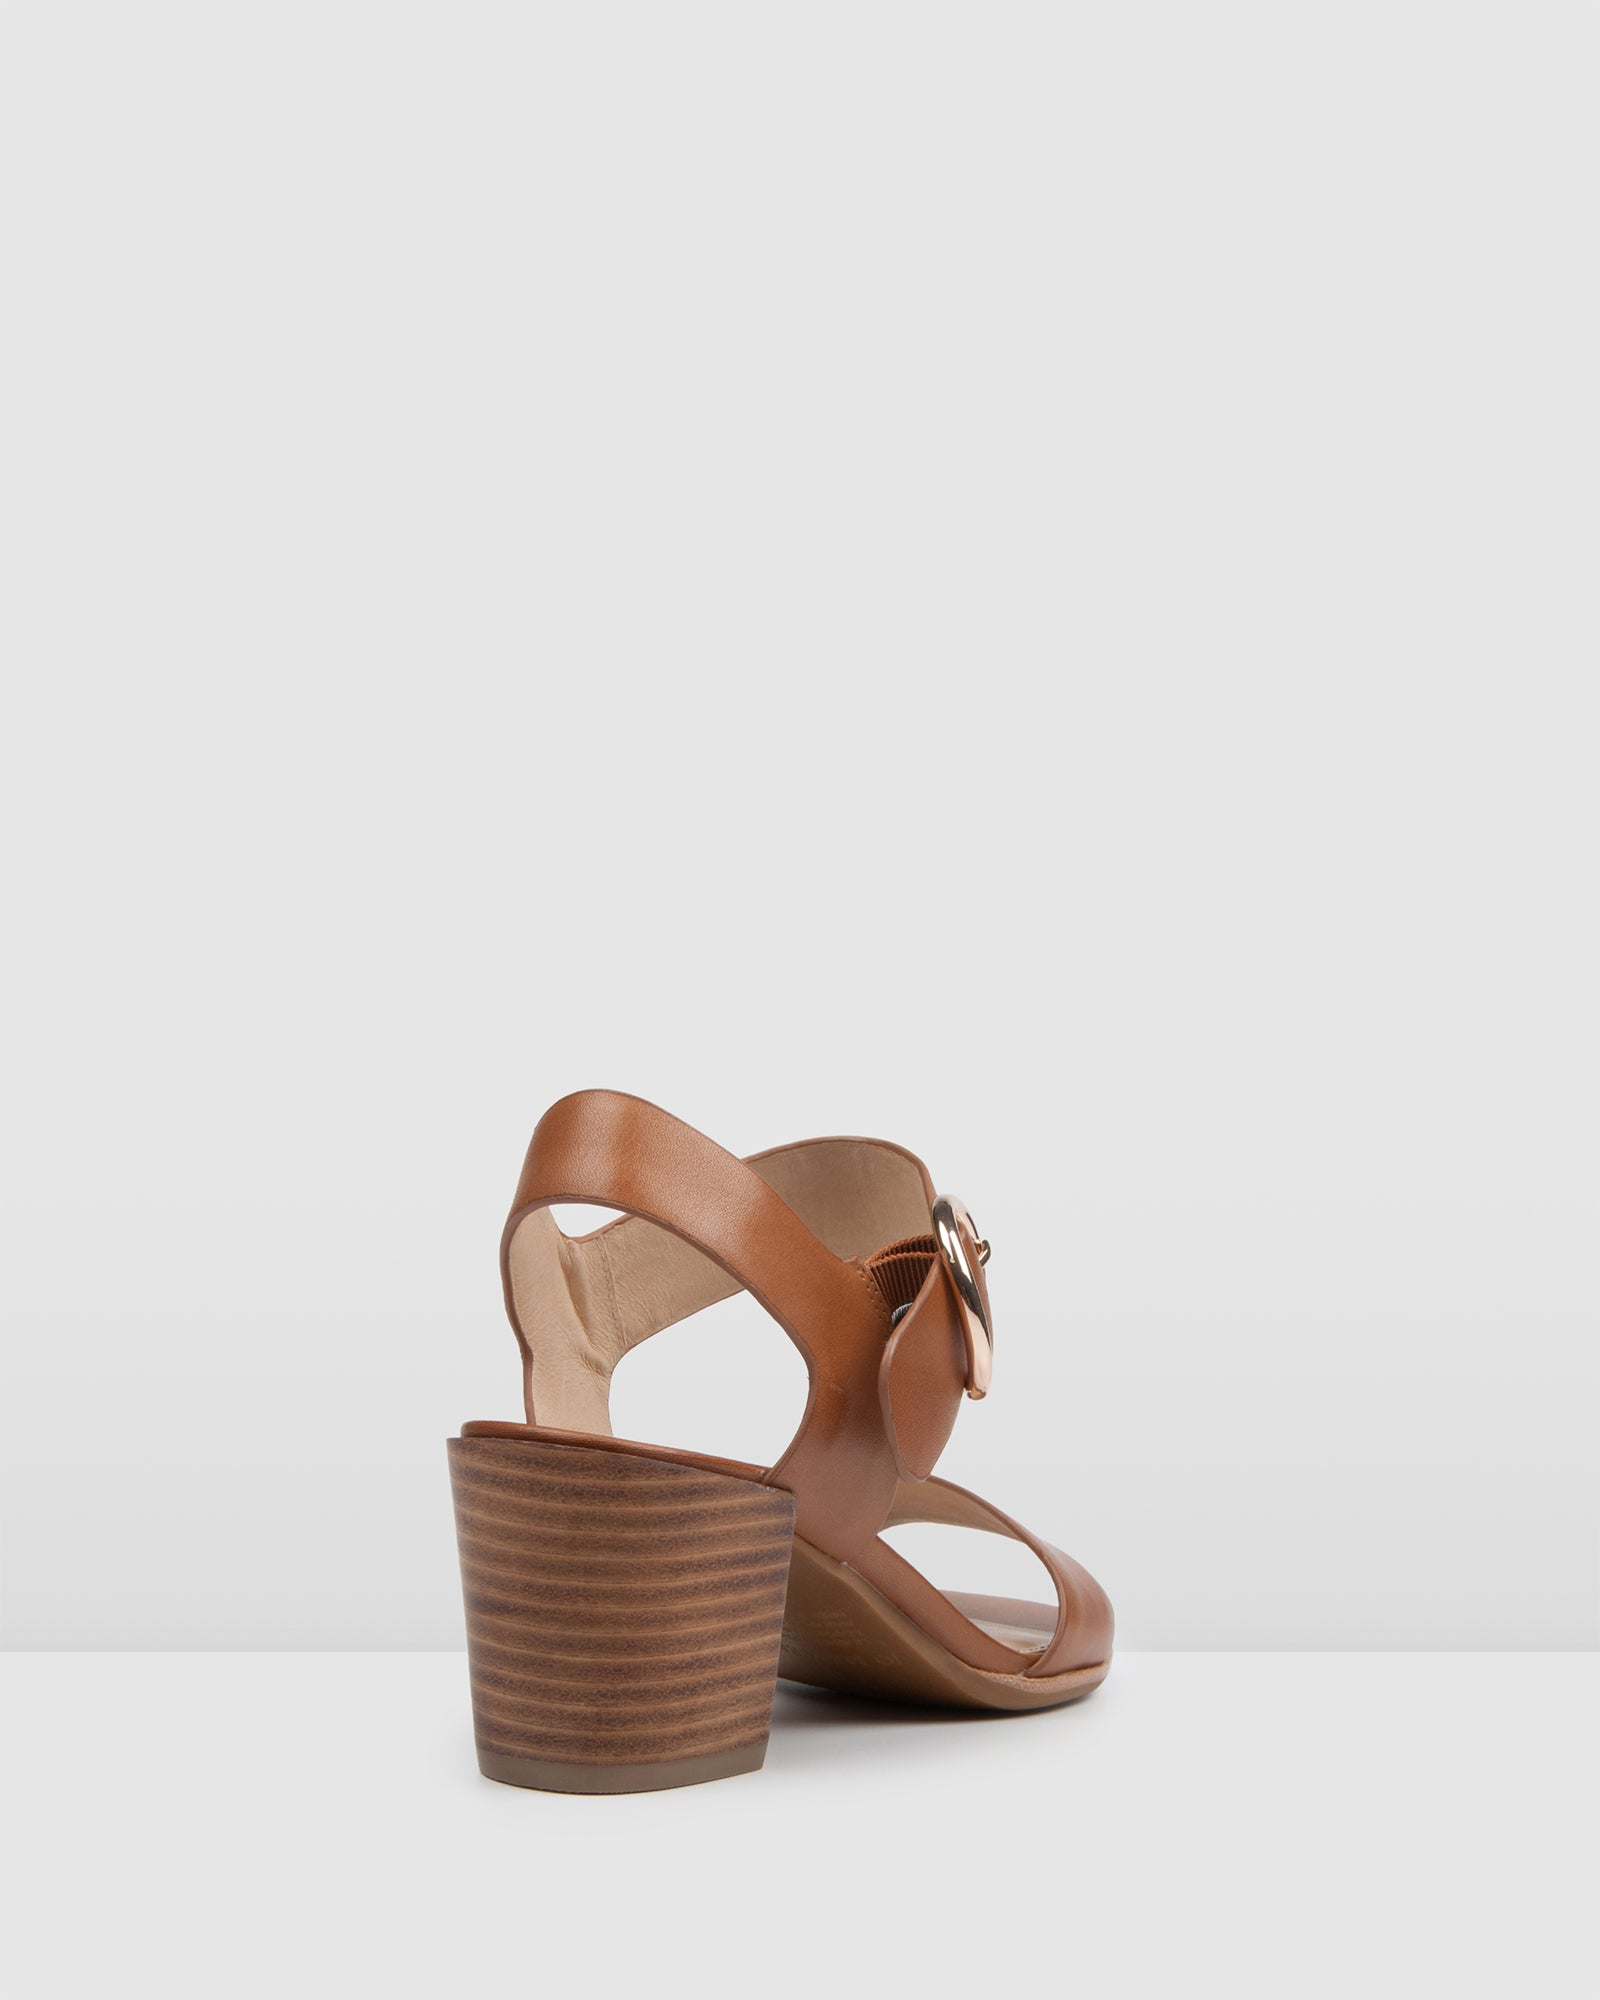 BOWIE MID HEEL SANDALS TAN LEATHER